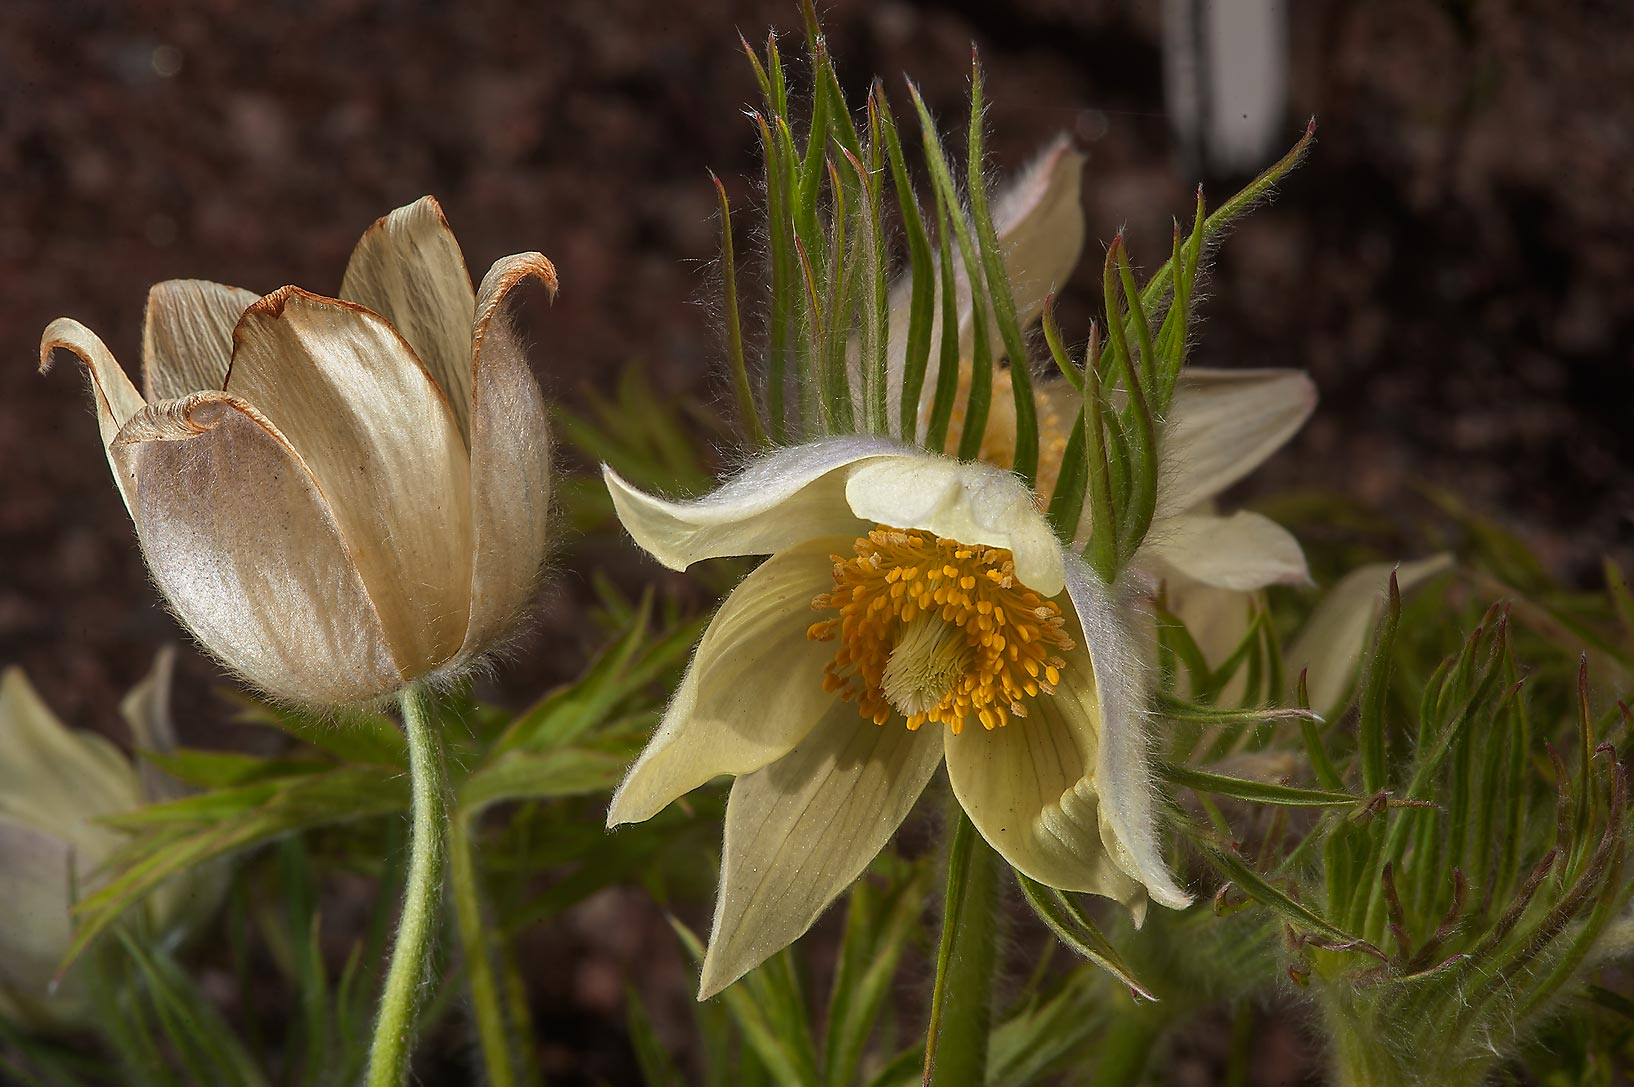 Yellow eastern pasque flower (Pulsatilla...Institute. St.Petersburg, Russia